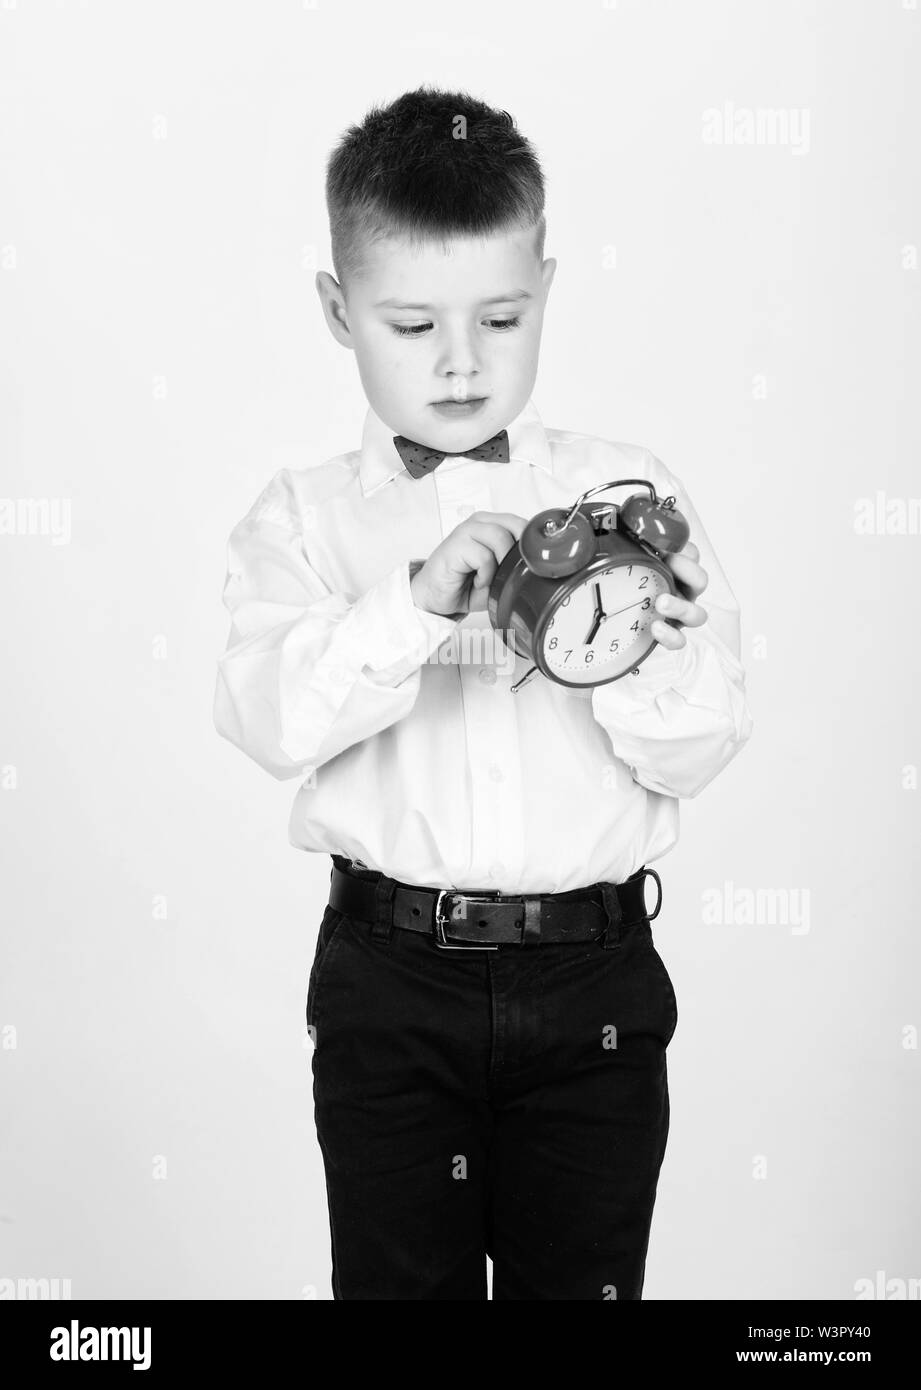 happy child with retro clock in bow tie. little boy with alarm clock. Time to relax. Party time. Businessman. Formal wear. Time management. Morning. tuxedo kid. Happy childhood. Memorable morning. - Stock Image